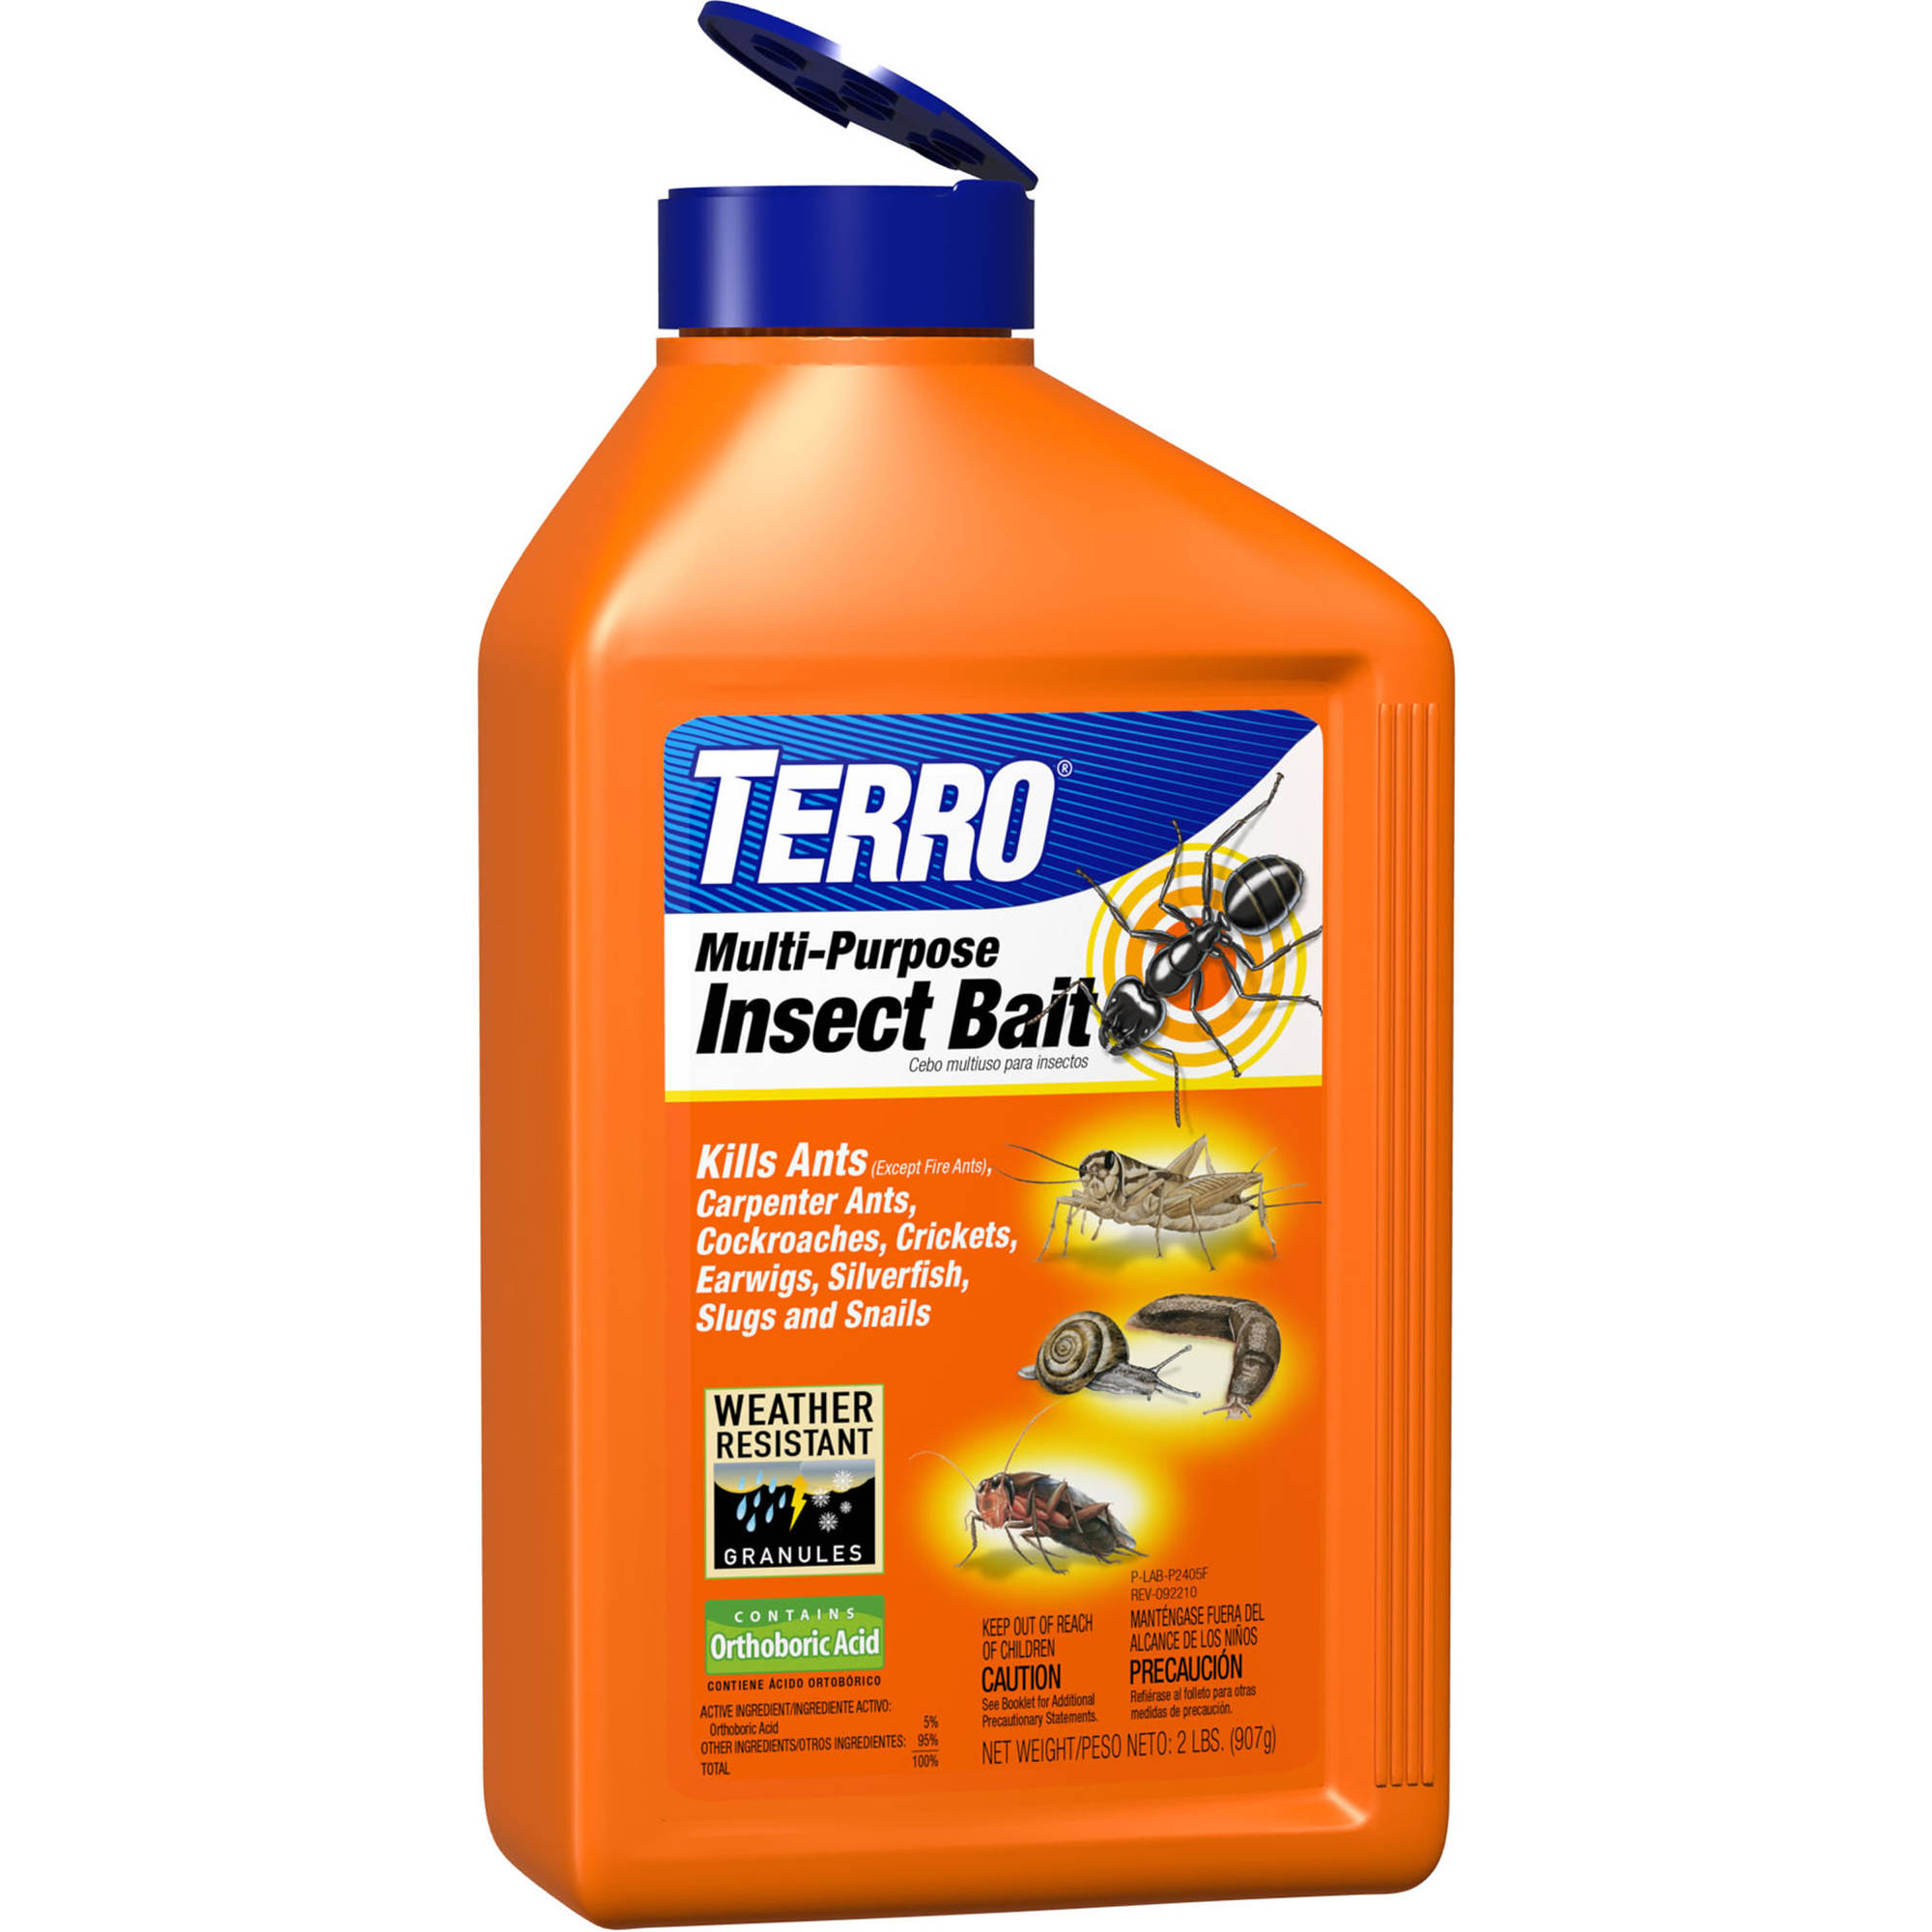 TERRO Multi-Purpose Insect Bait